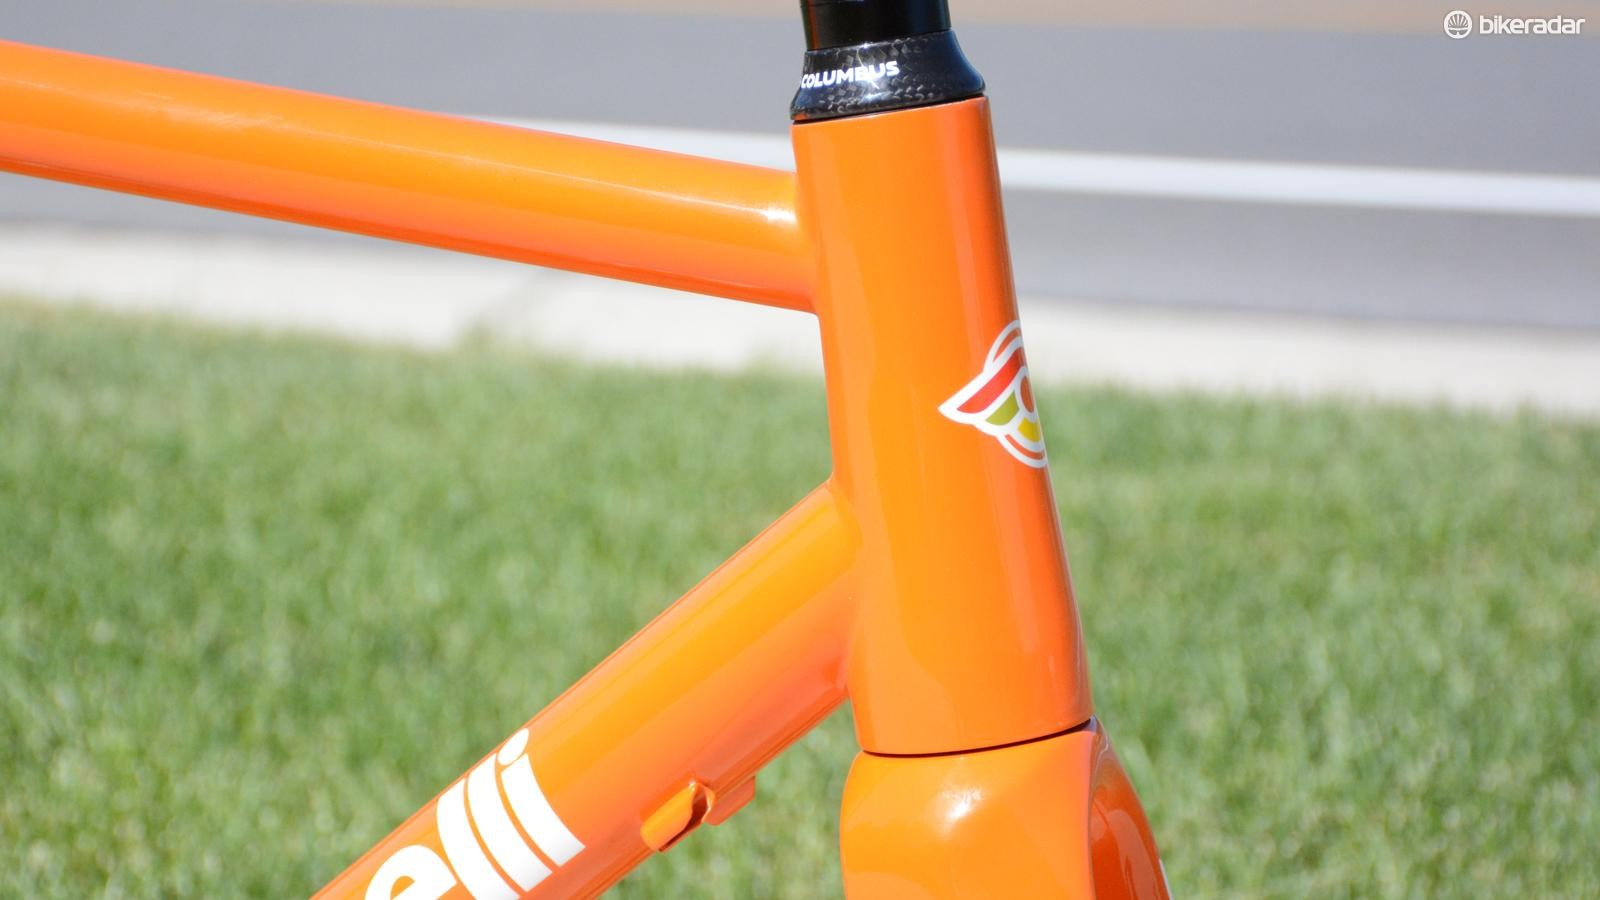 The fork and head tube are tapered 1.5in to 1 1/8in